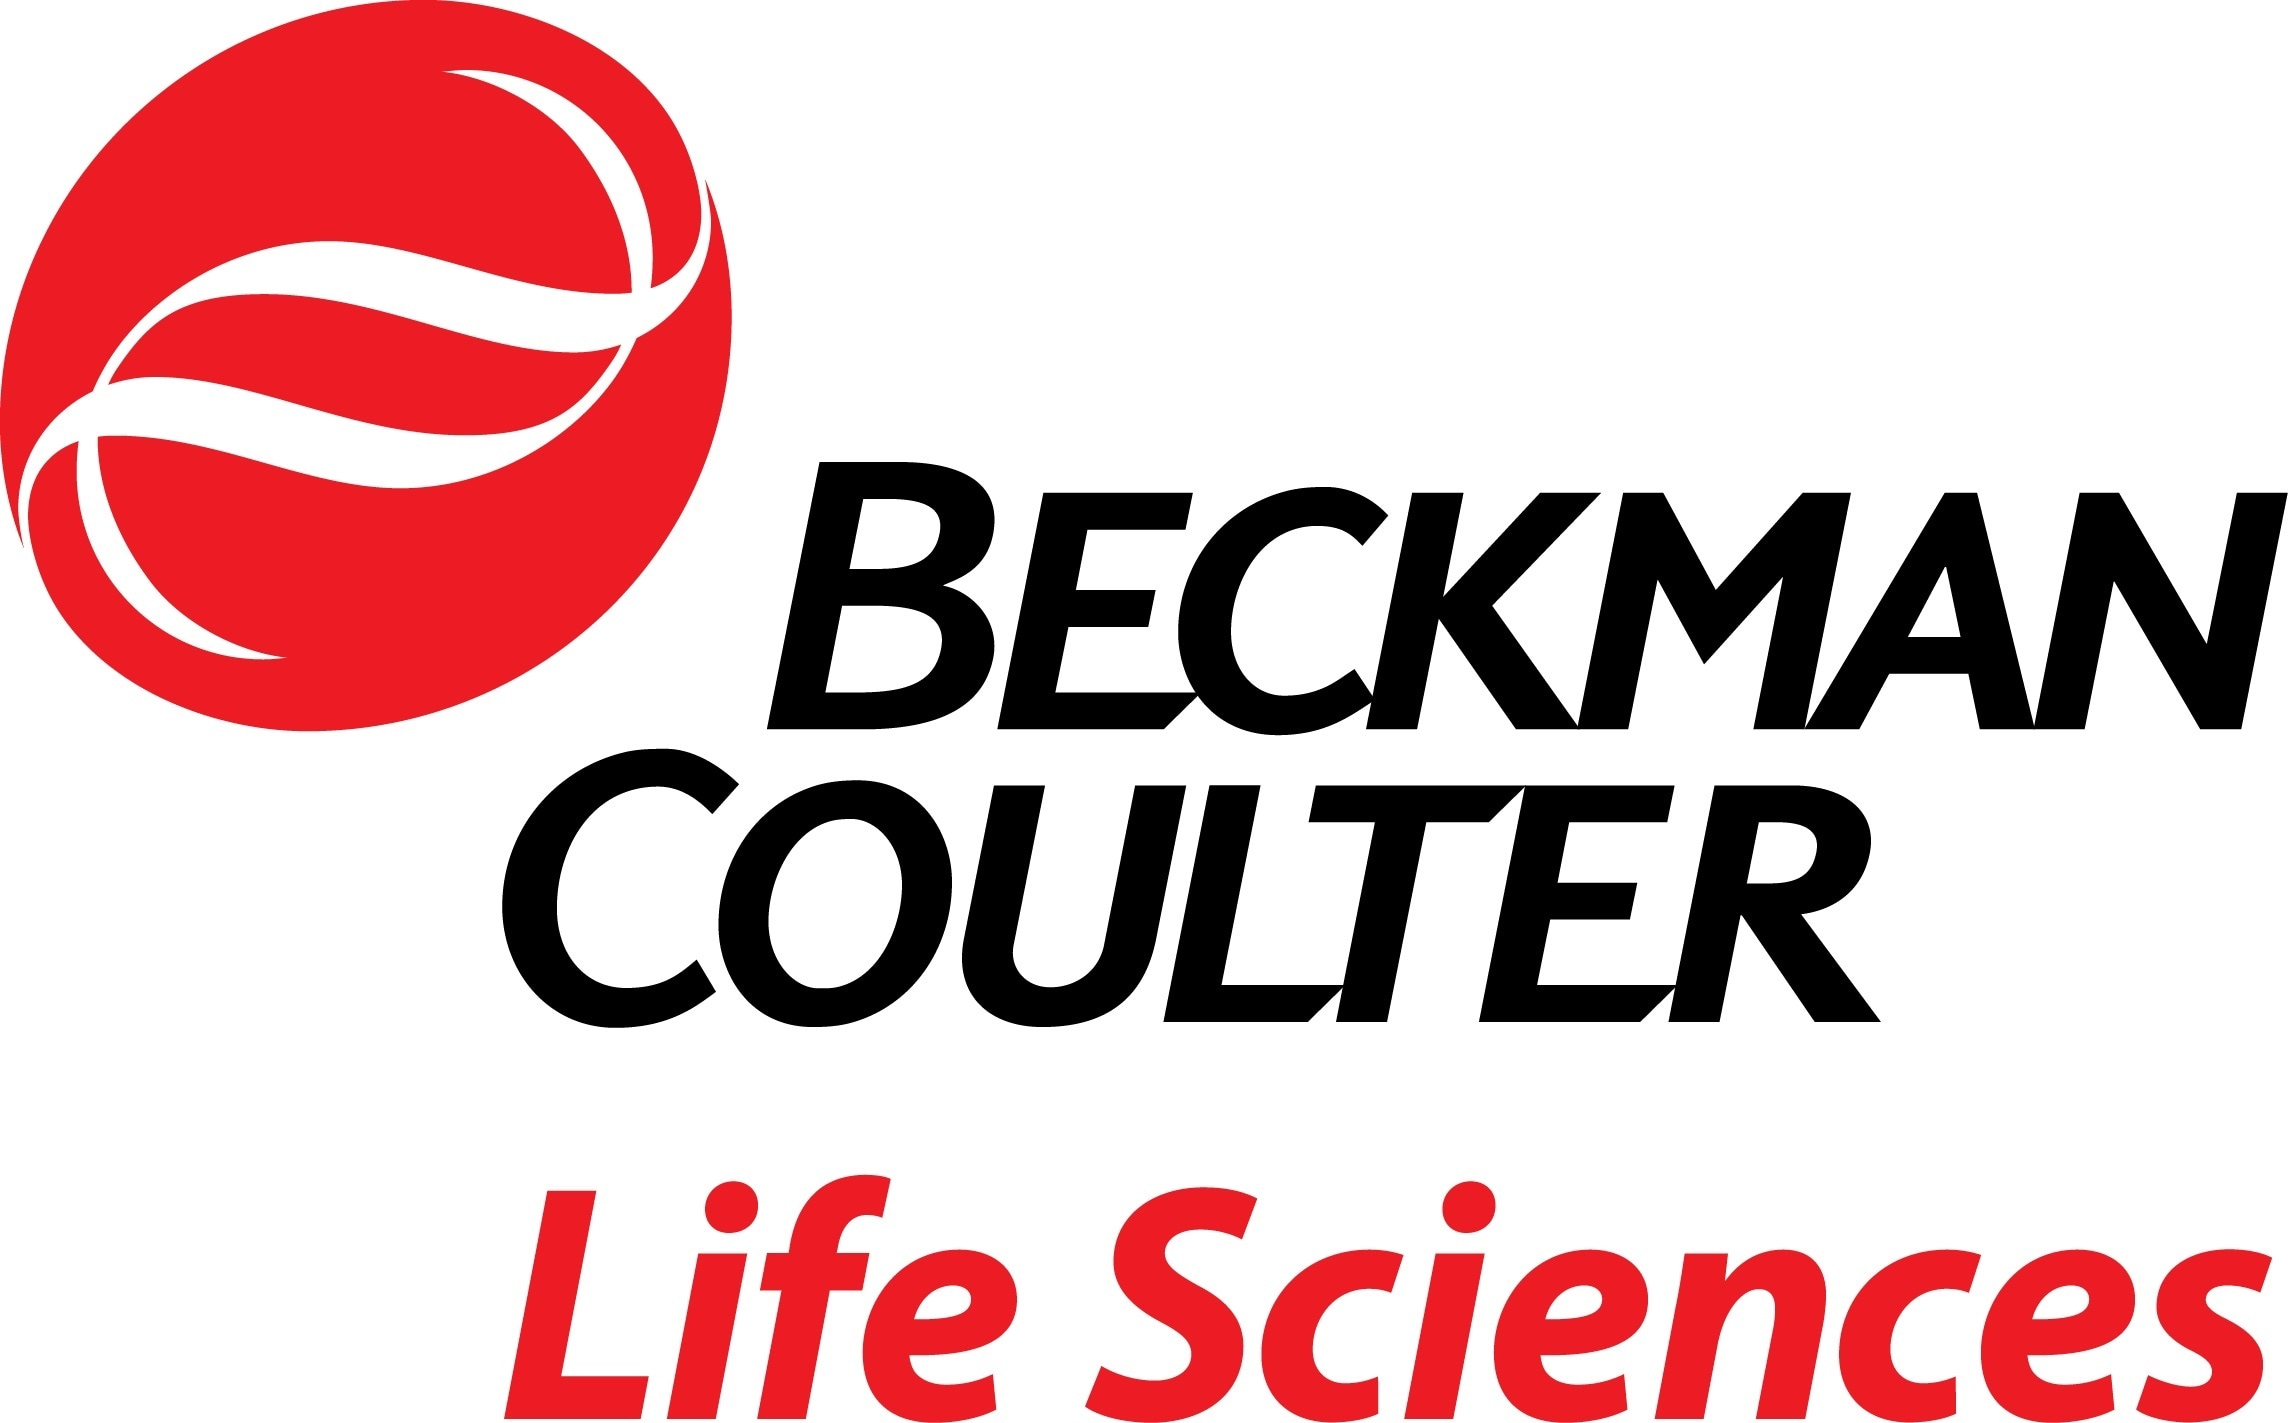 Beckman Coulter Life Sciences  - Automation and Genomics logo.